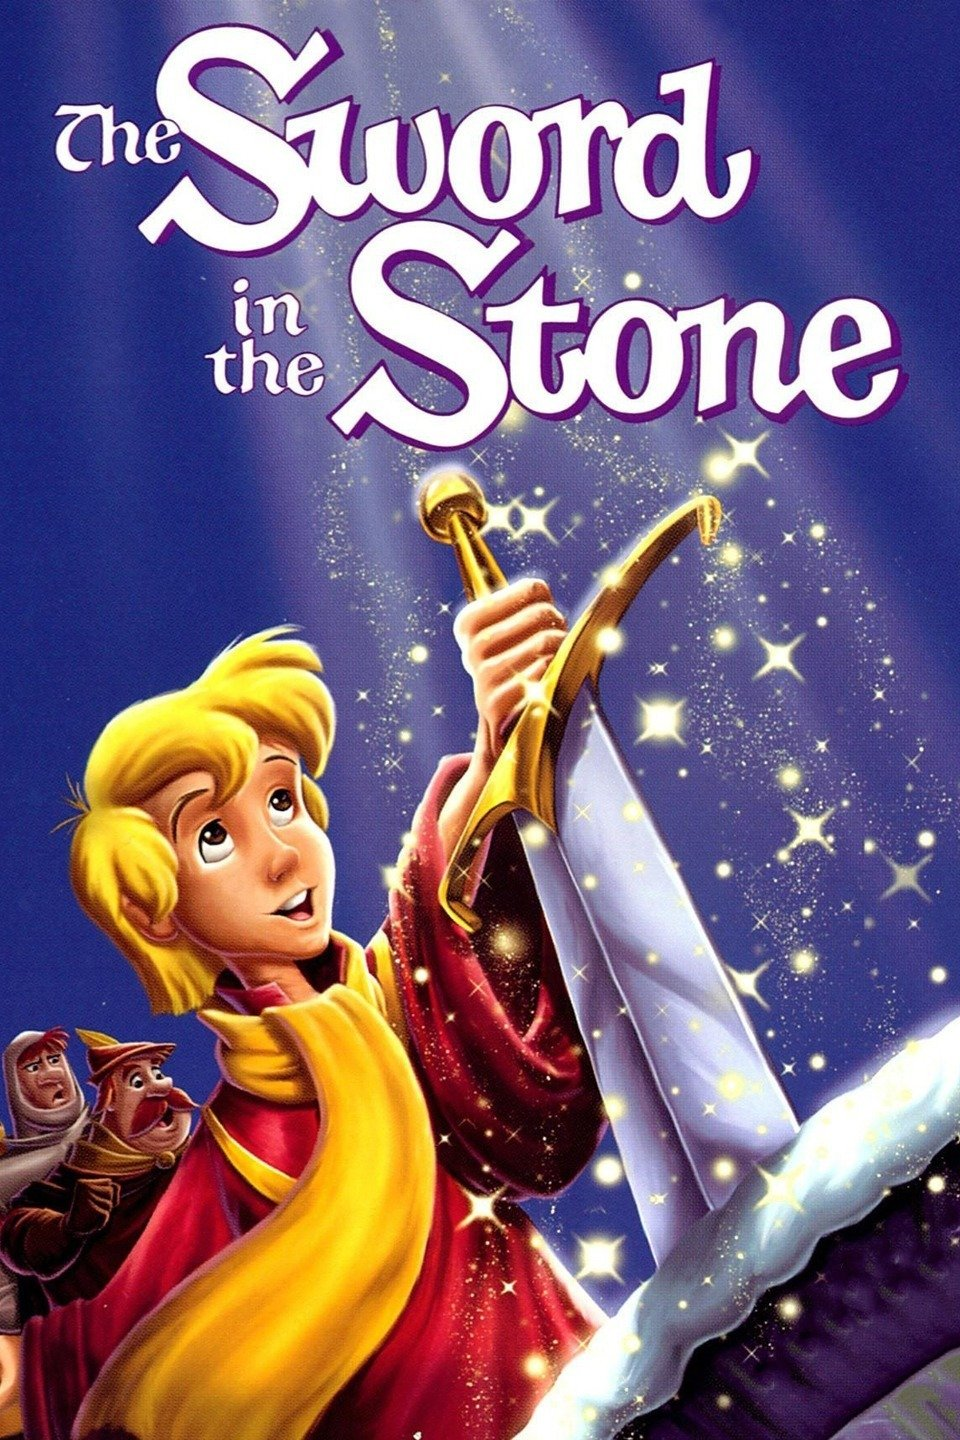 The Sword in the Stone (1963) - Directed by: Wolfgang ReithermanStarring: Karl Swenson, Rickie Sorensen, Junius MatthewsRated: GRunning Time: 1 h 19 mTMM Score: 4 stars out of 5STRENGTHS: Message, Charm, Animation, PacingWEAKNESSES: Episodic Storytelling, End Abruptly